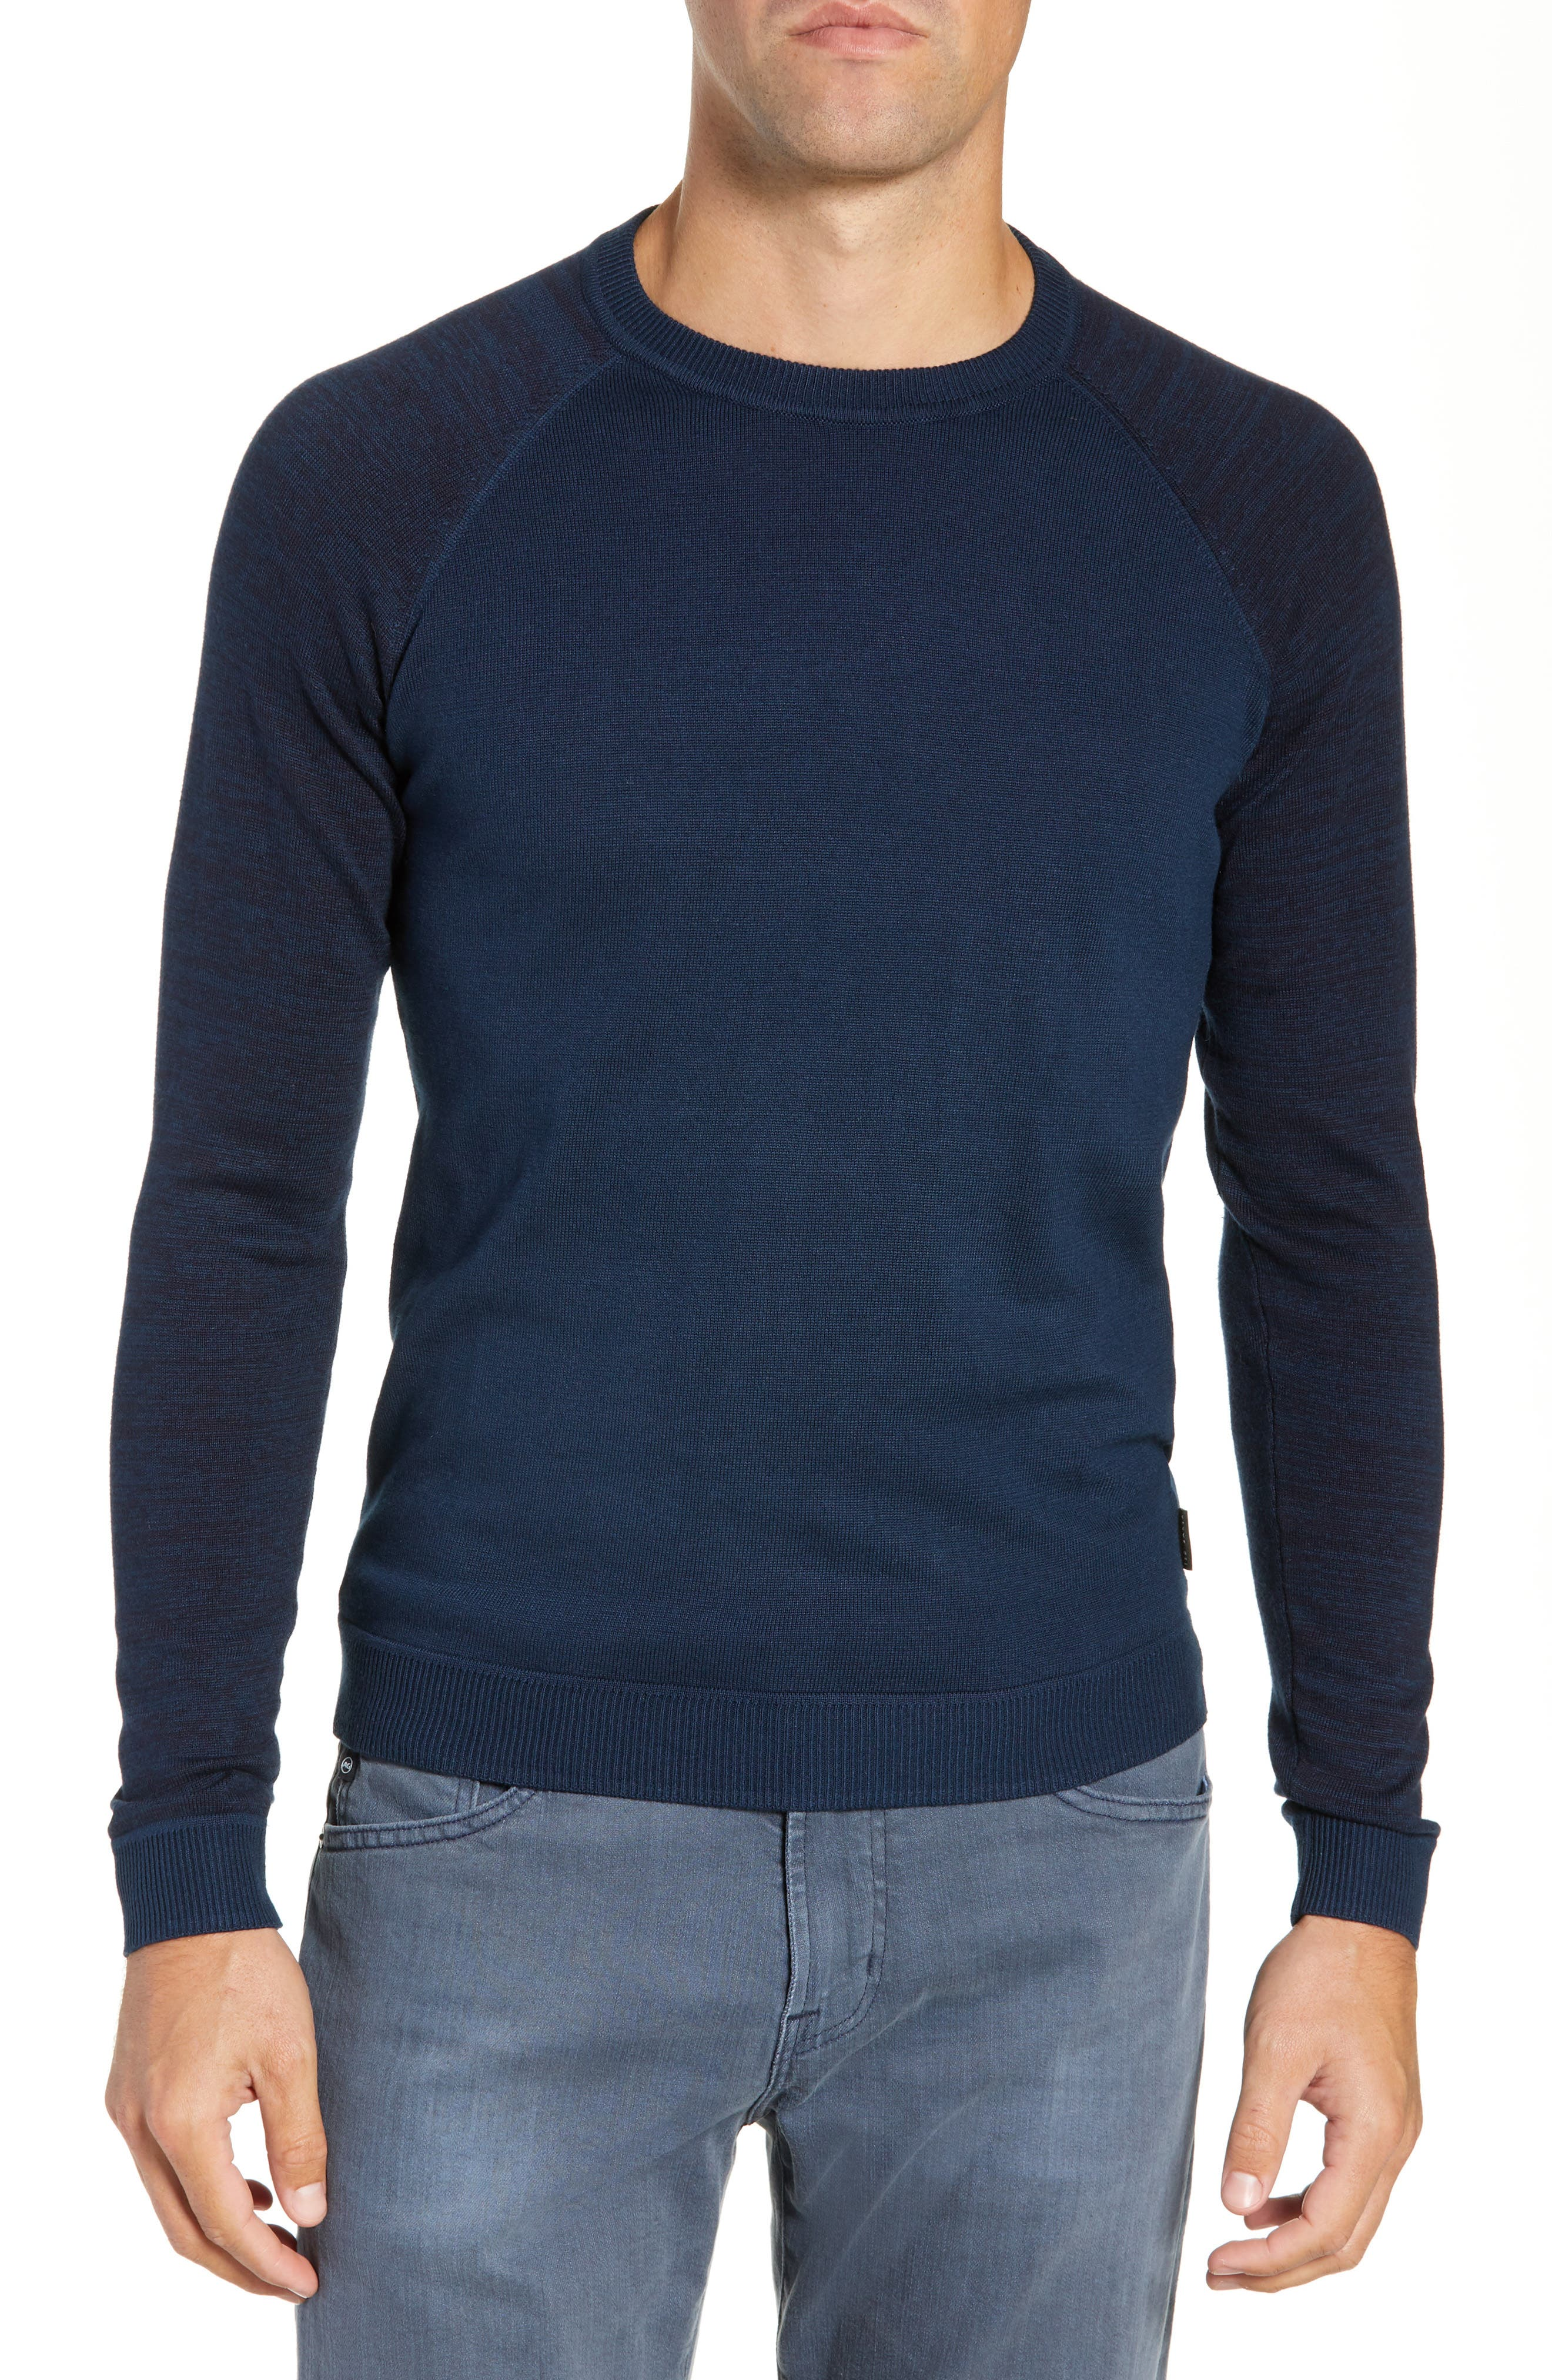 Cornfed Slim Fit Sweater,                         Main,                         color, TEAL-BLUE